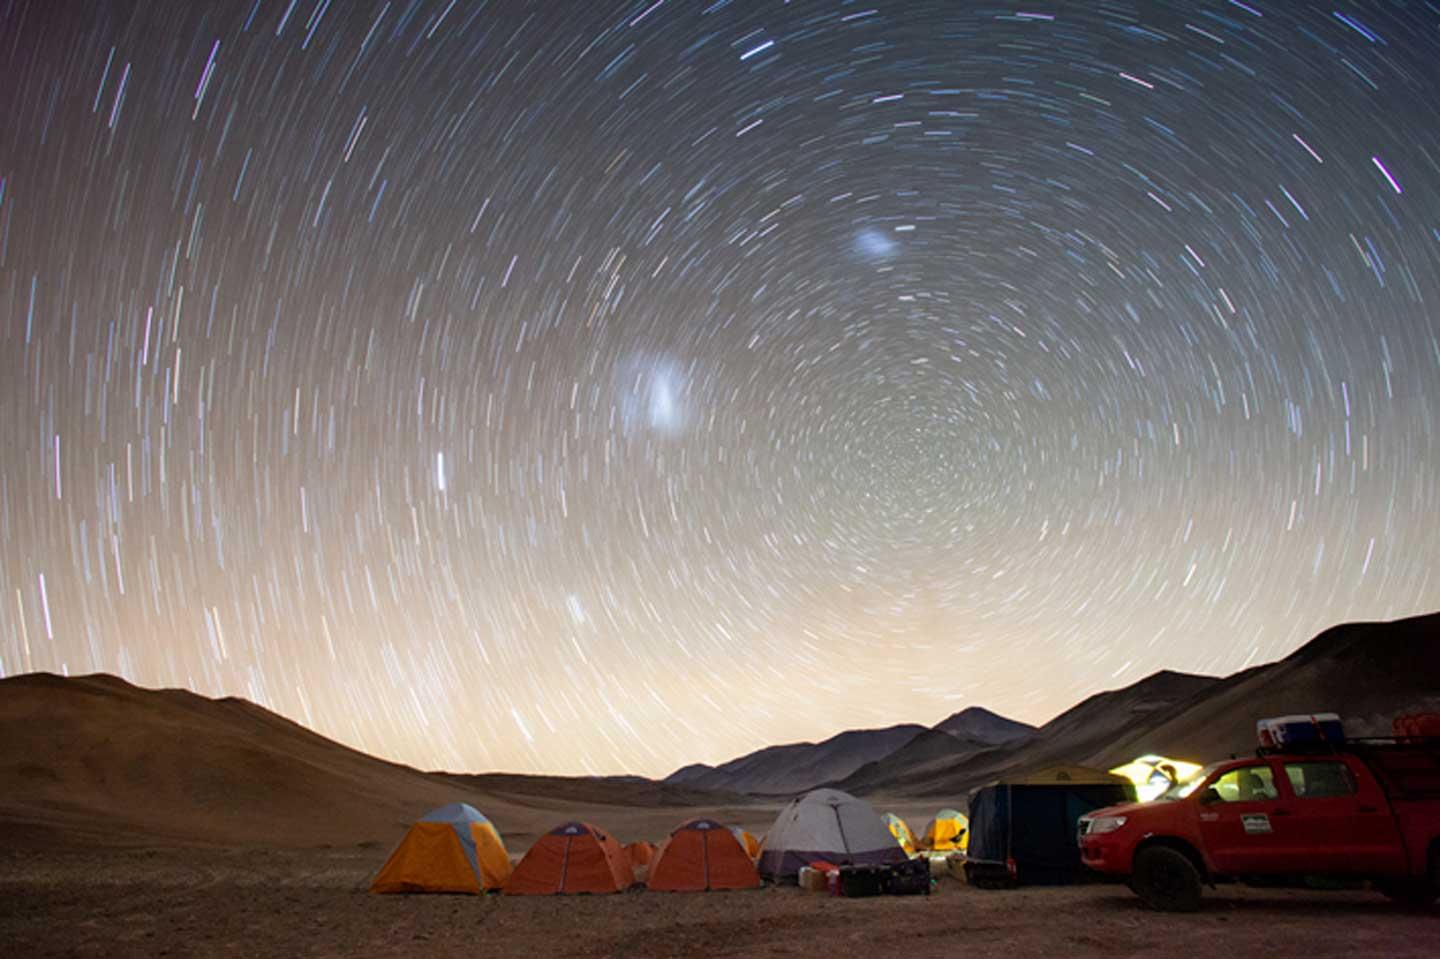 The Andes field expedition team's camp at night. Right in the center of the star trail, the two Magellanic Clouds give visions of alien worlds. Photo credit: Victor Robles, Campoalto and the SETI Institute NAI Team. Image credit: None